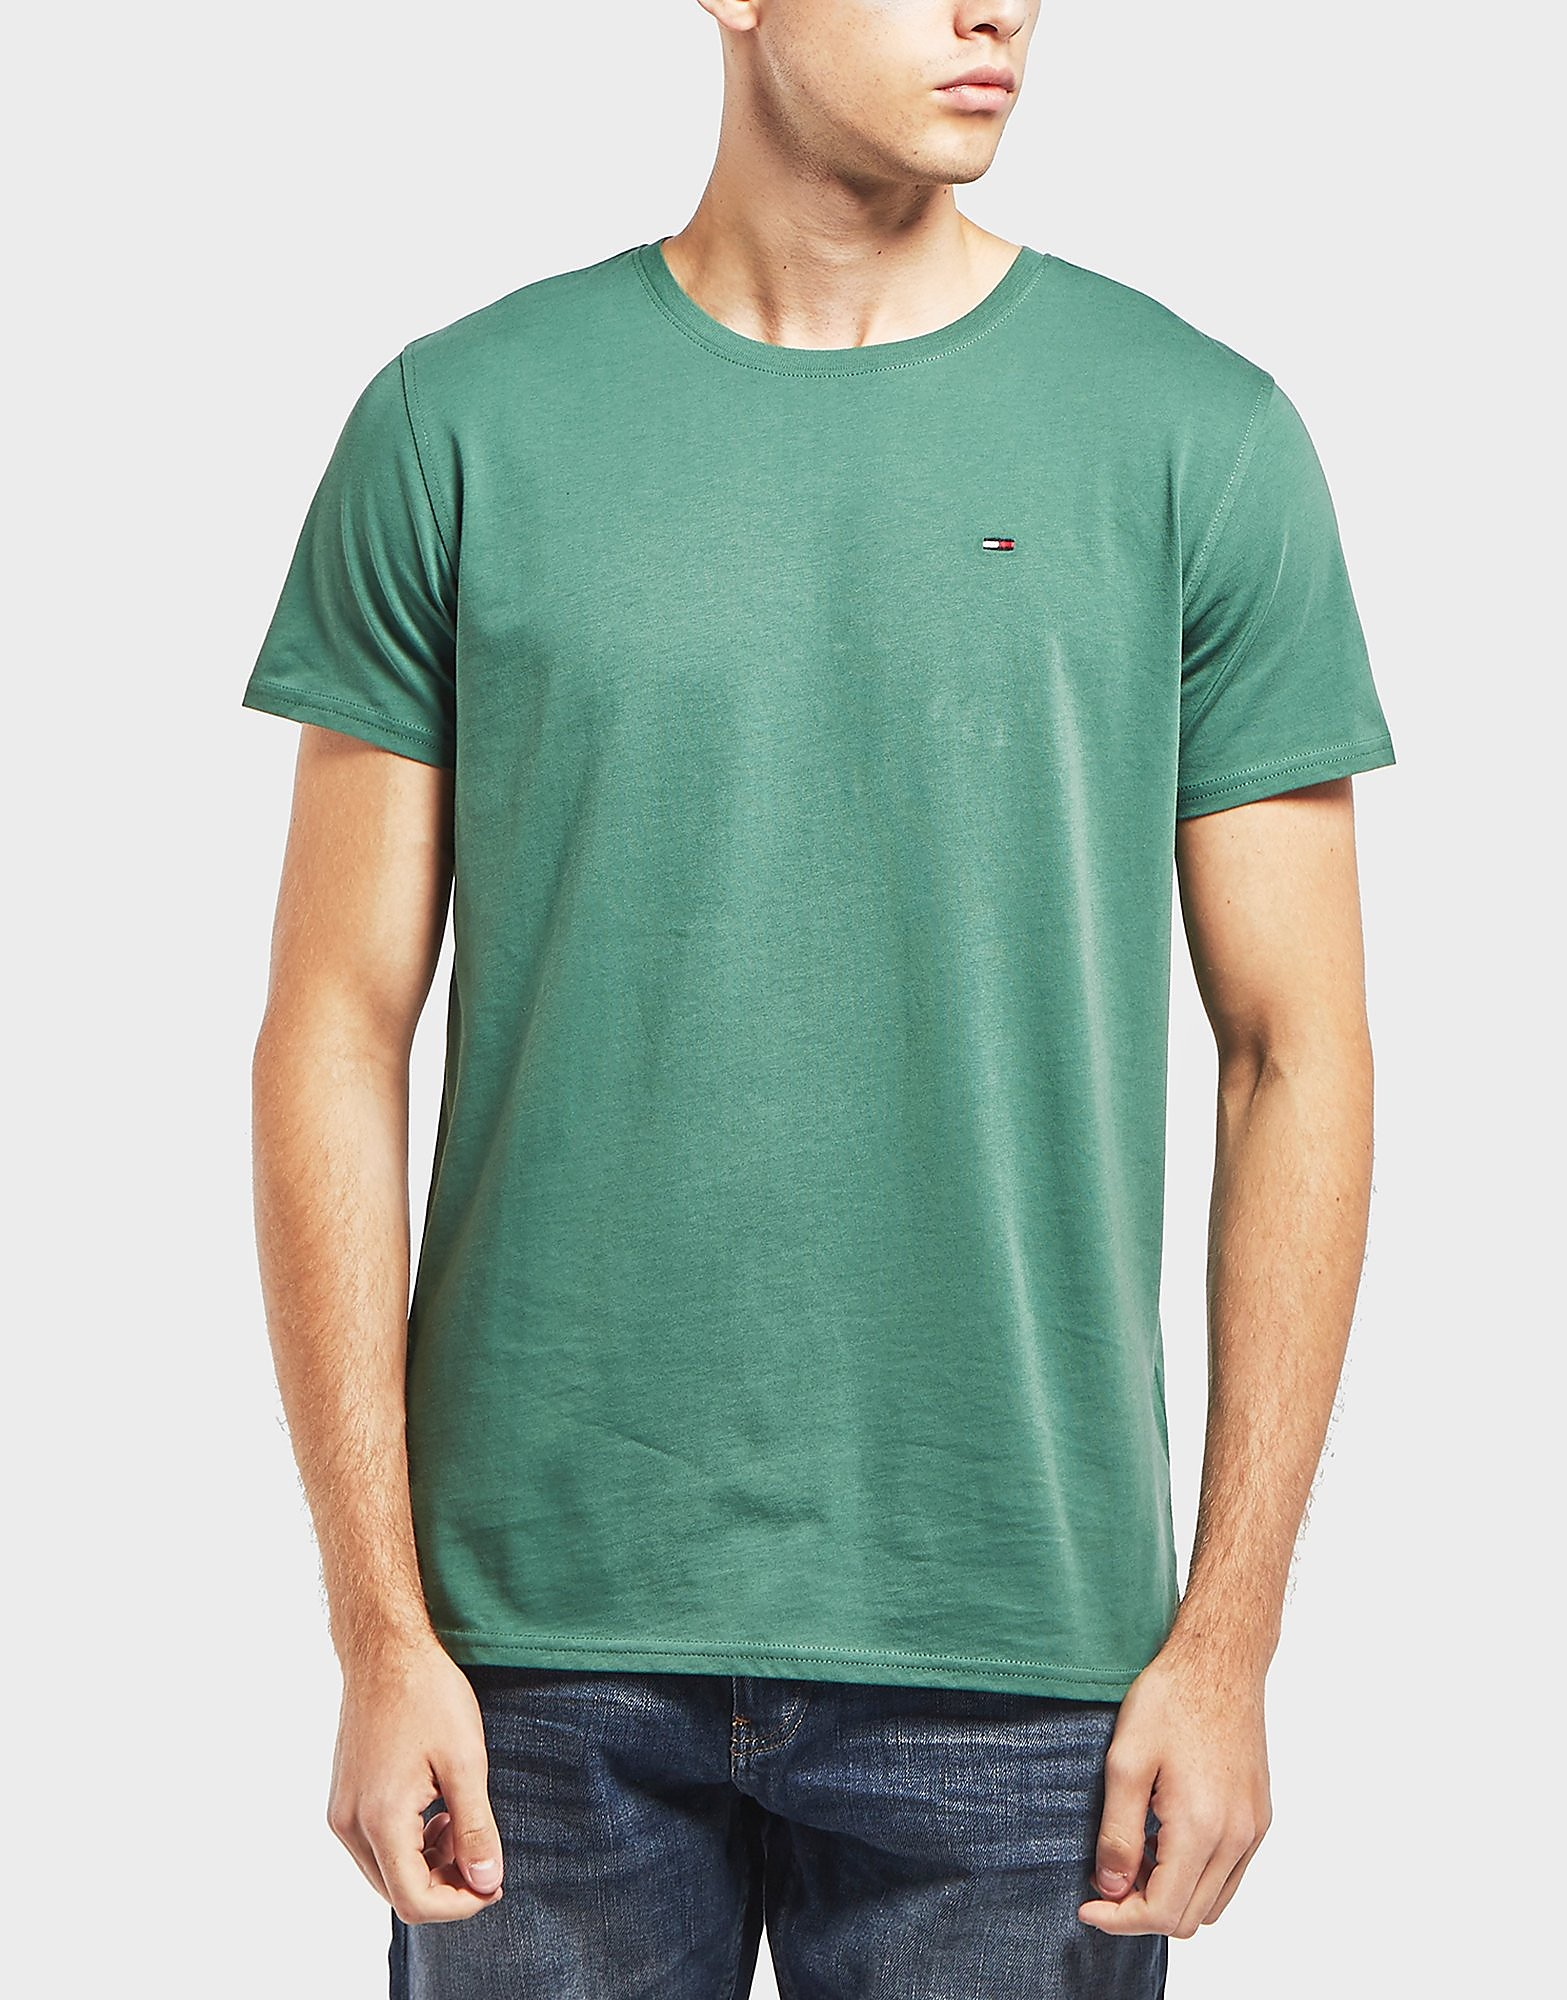 69290fe88 Tommy Jeans Small Flag Short Sleeve T-Shirt - Green